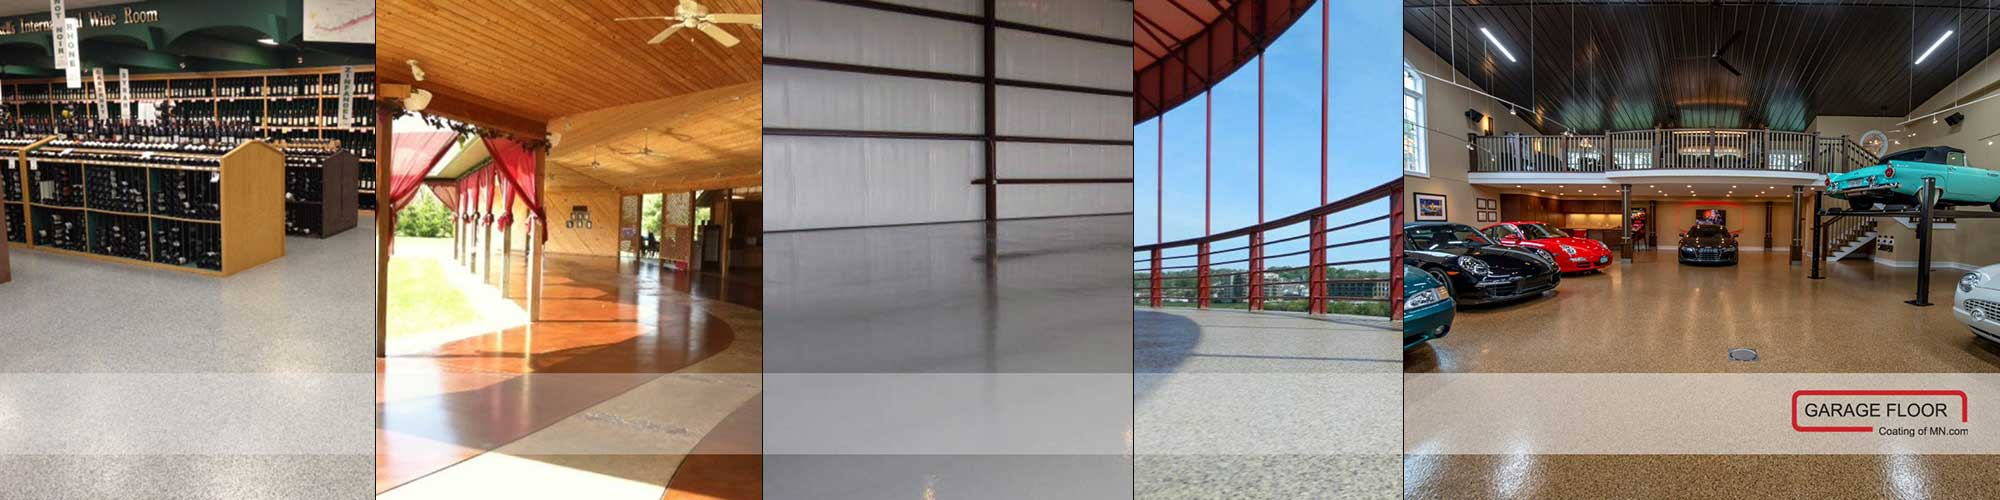 Garage Floor Coating Of Mn Events With Cars